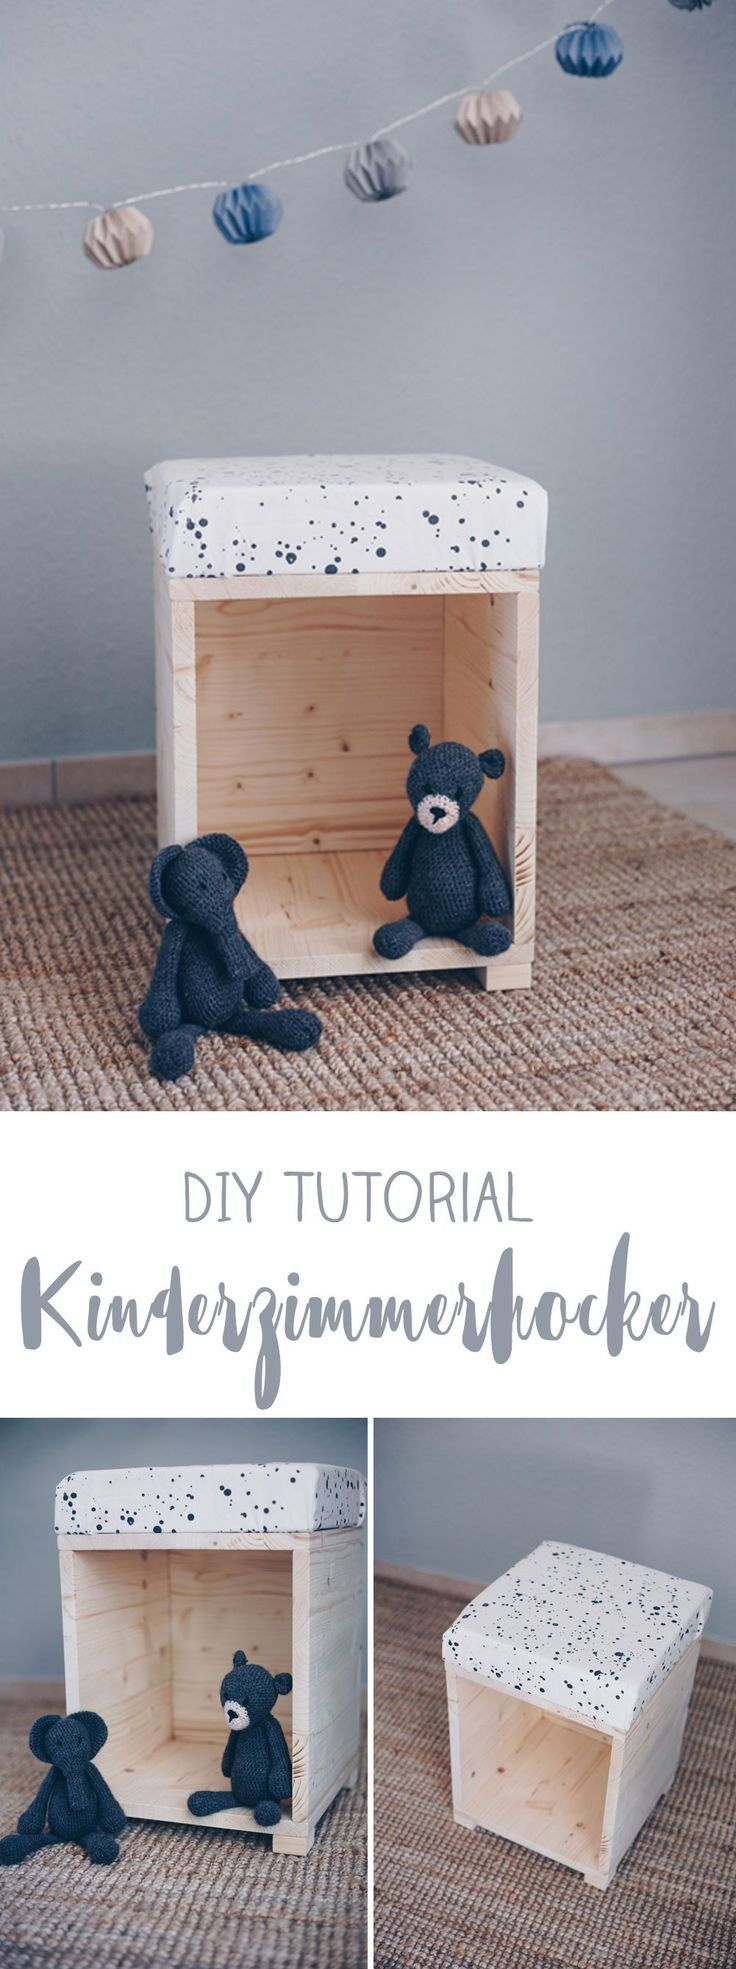 diy hocker f rs kinderzimmer zum spielen m bel selberbauen diy idee projects to try. Black Bedroom Furniture Sets. Home Design Ideas